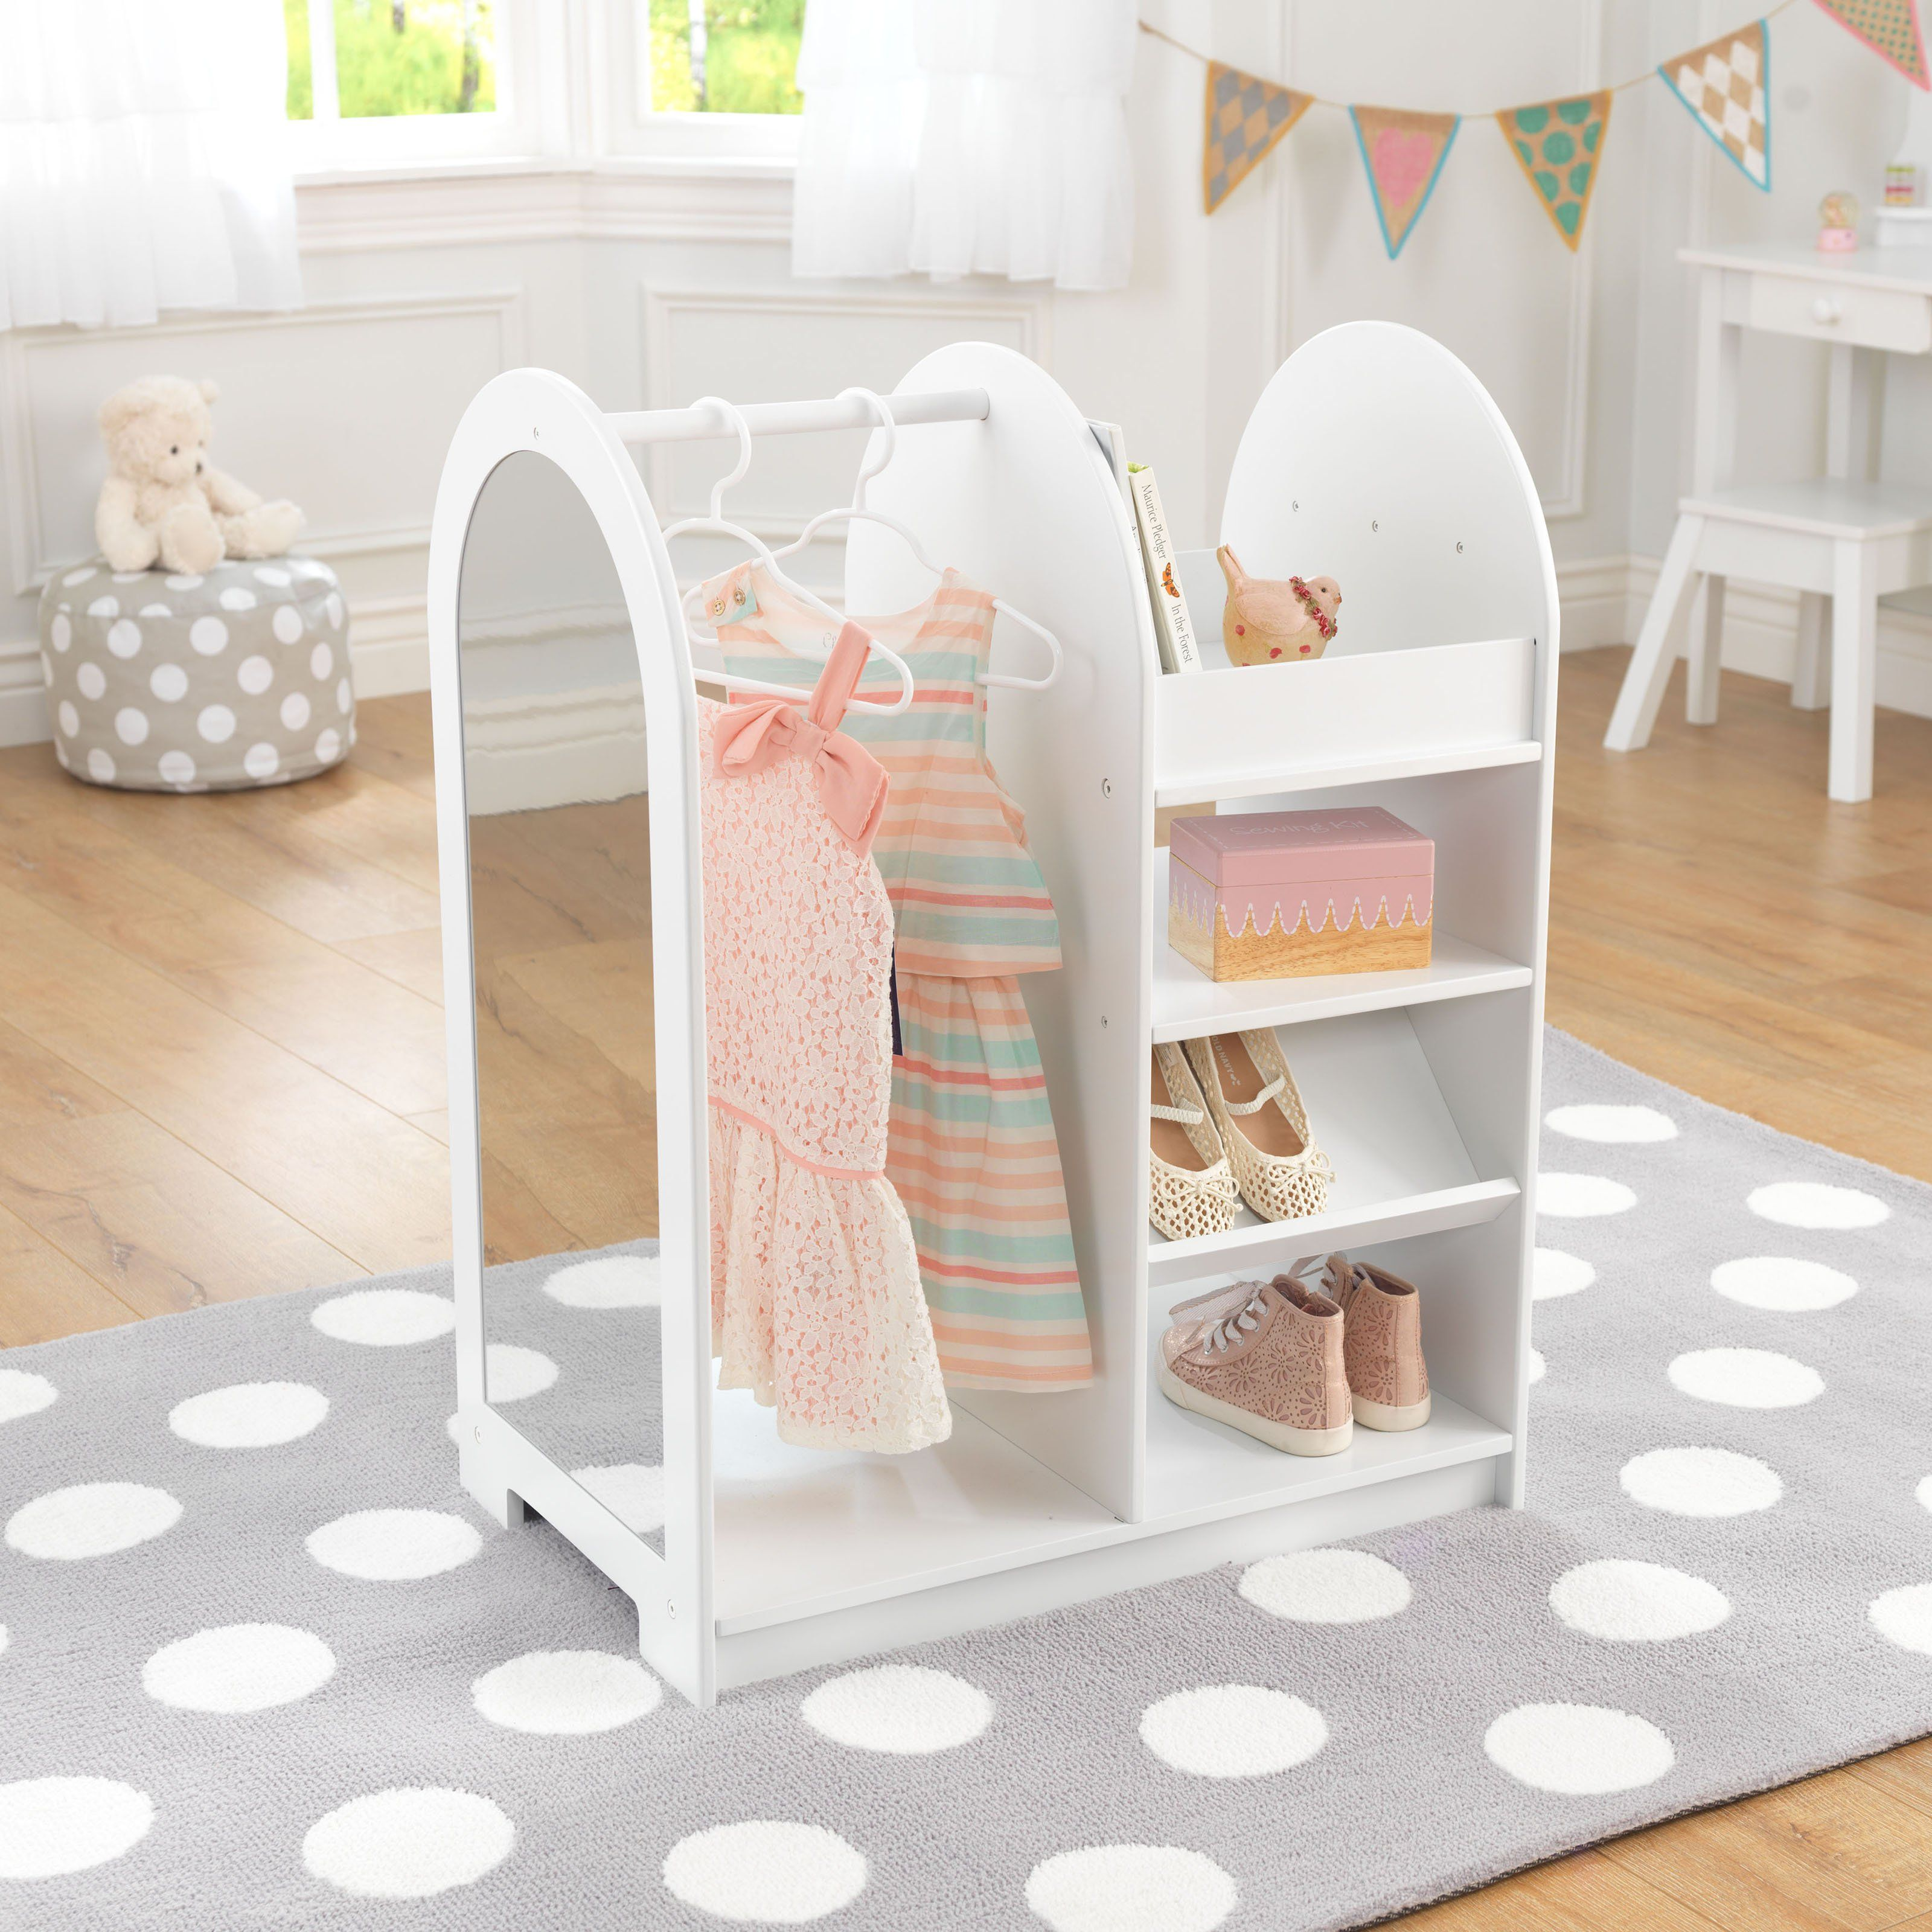 Kidkraft Let S Play Dress Up Unit 12511 About Is A Leading Creator Manufacturer And Distributor Of Children Furniture Toy